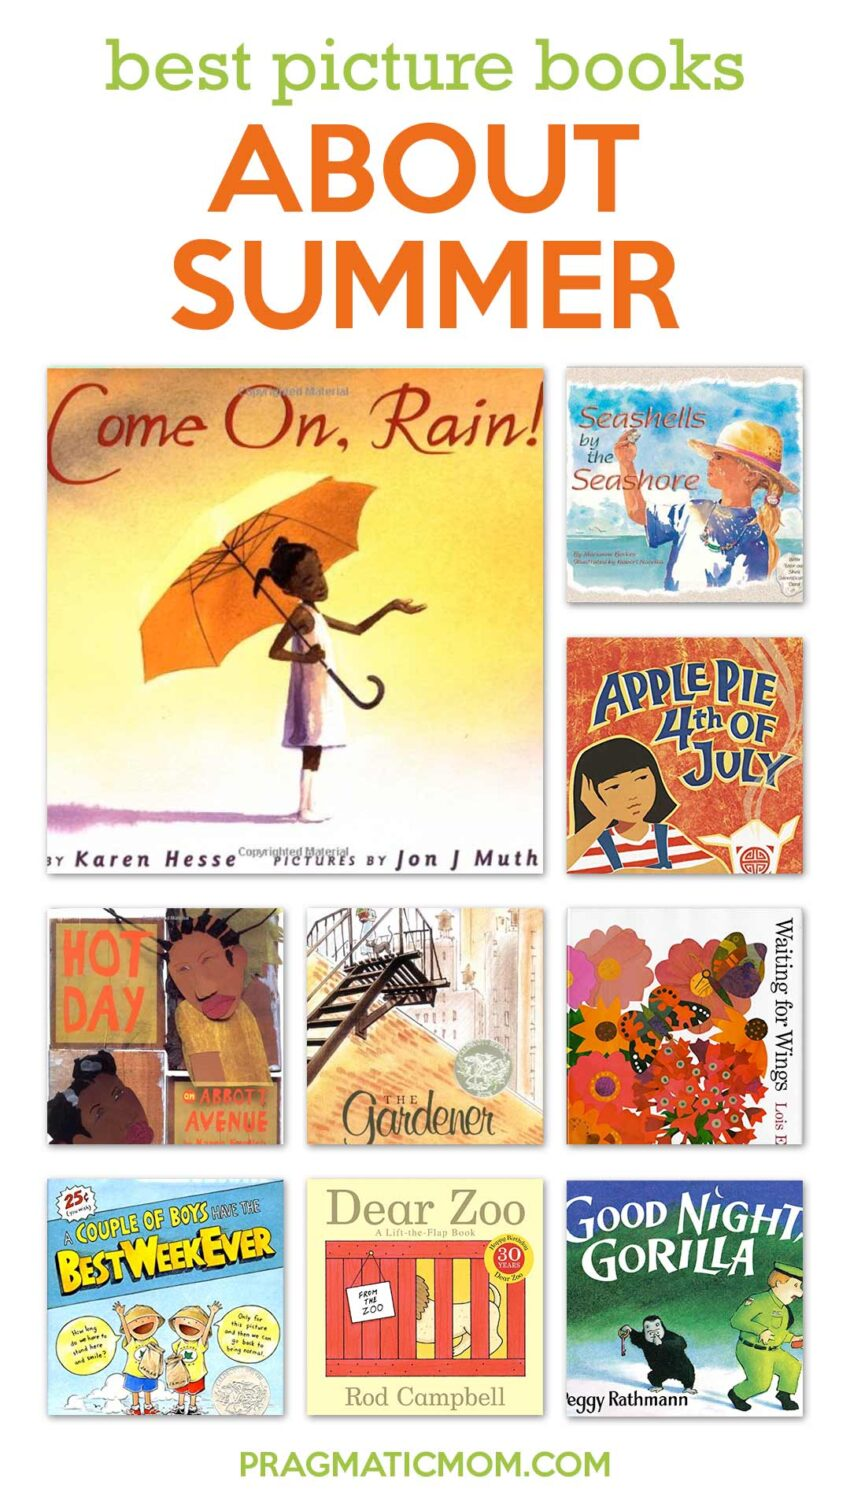 Best Picture Books About Summer